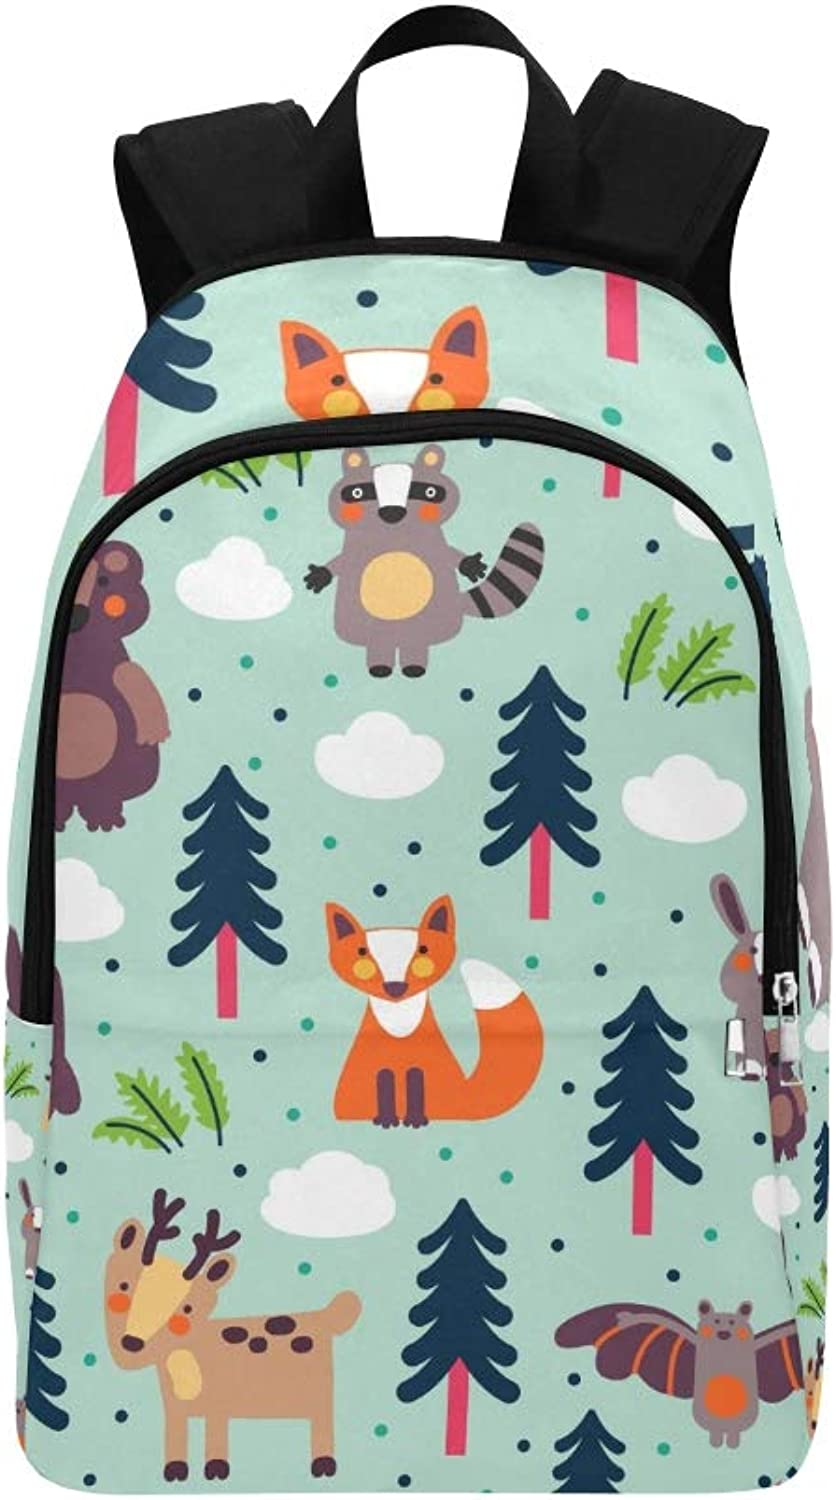 Funny Animal Modern Casual Daypack Travel Bag College School Backpack for Mens and Women